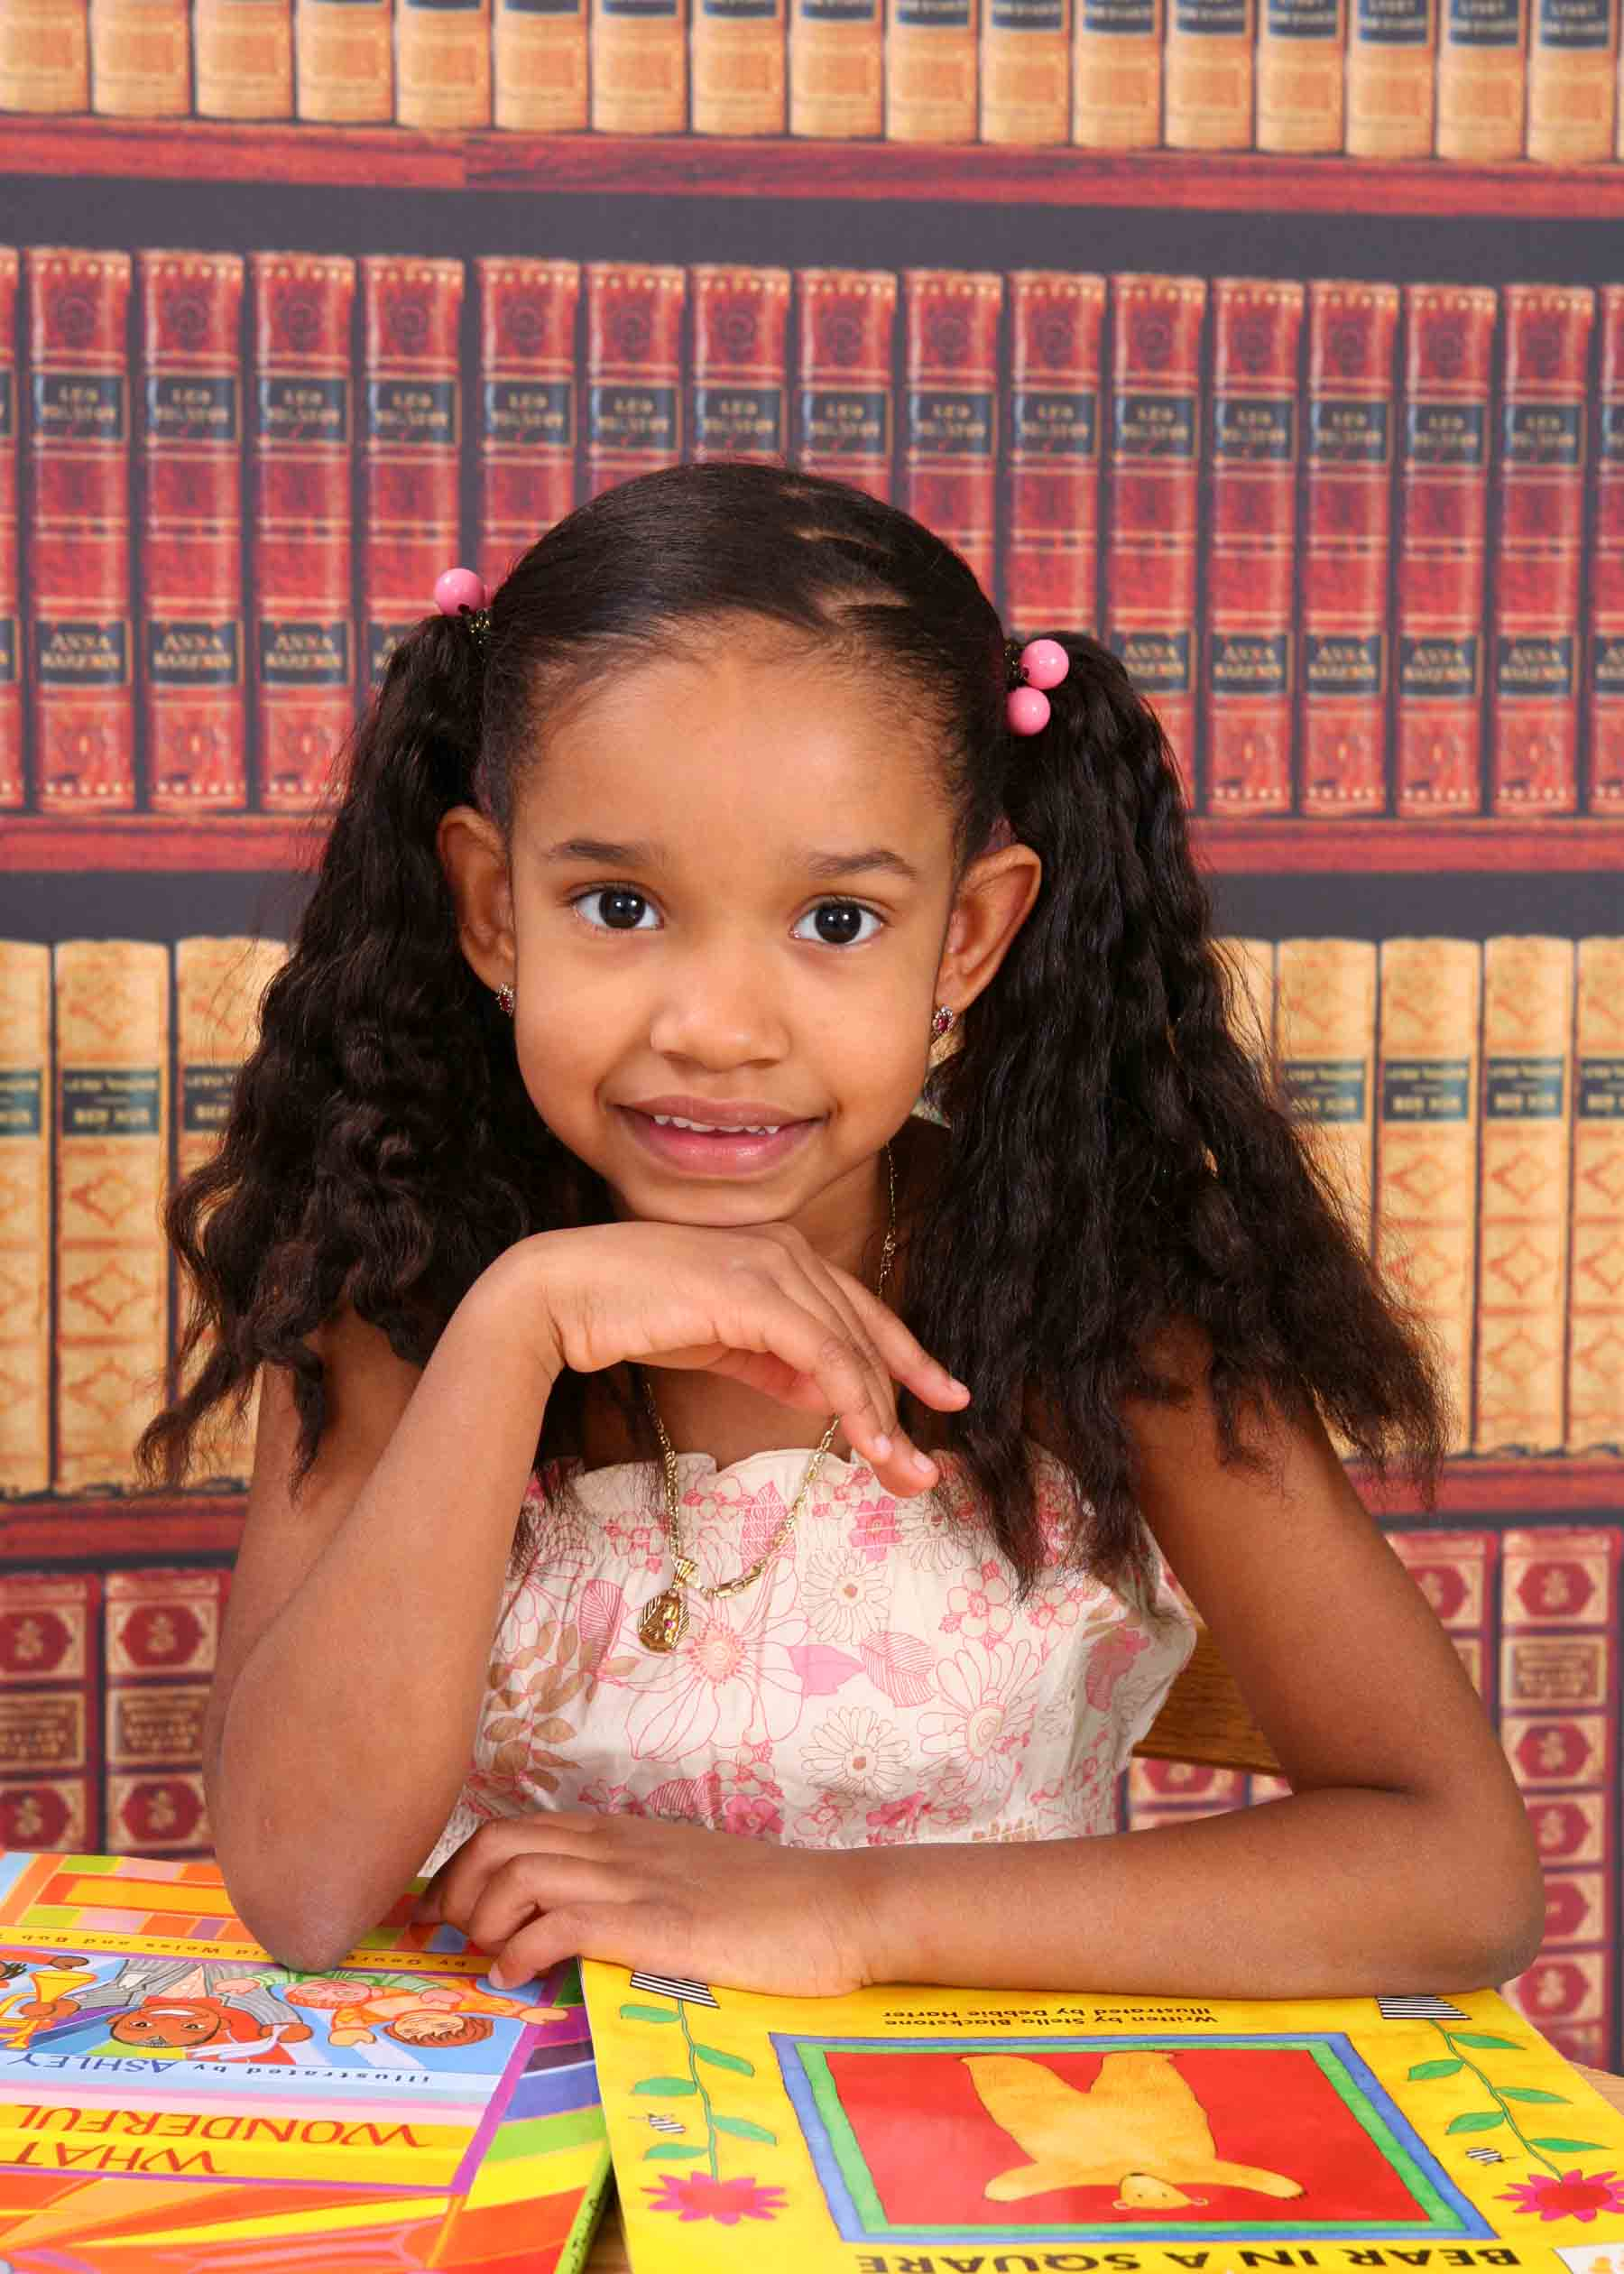 professional photography services nyc  school portraits  school pictures for greater nyc and